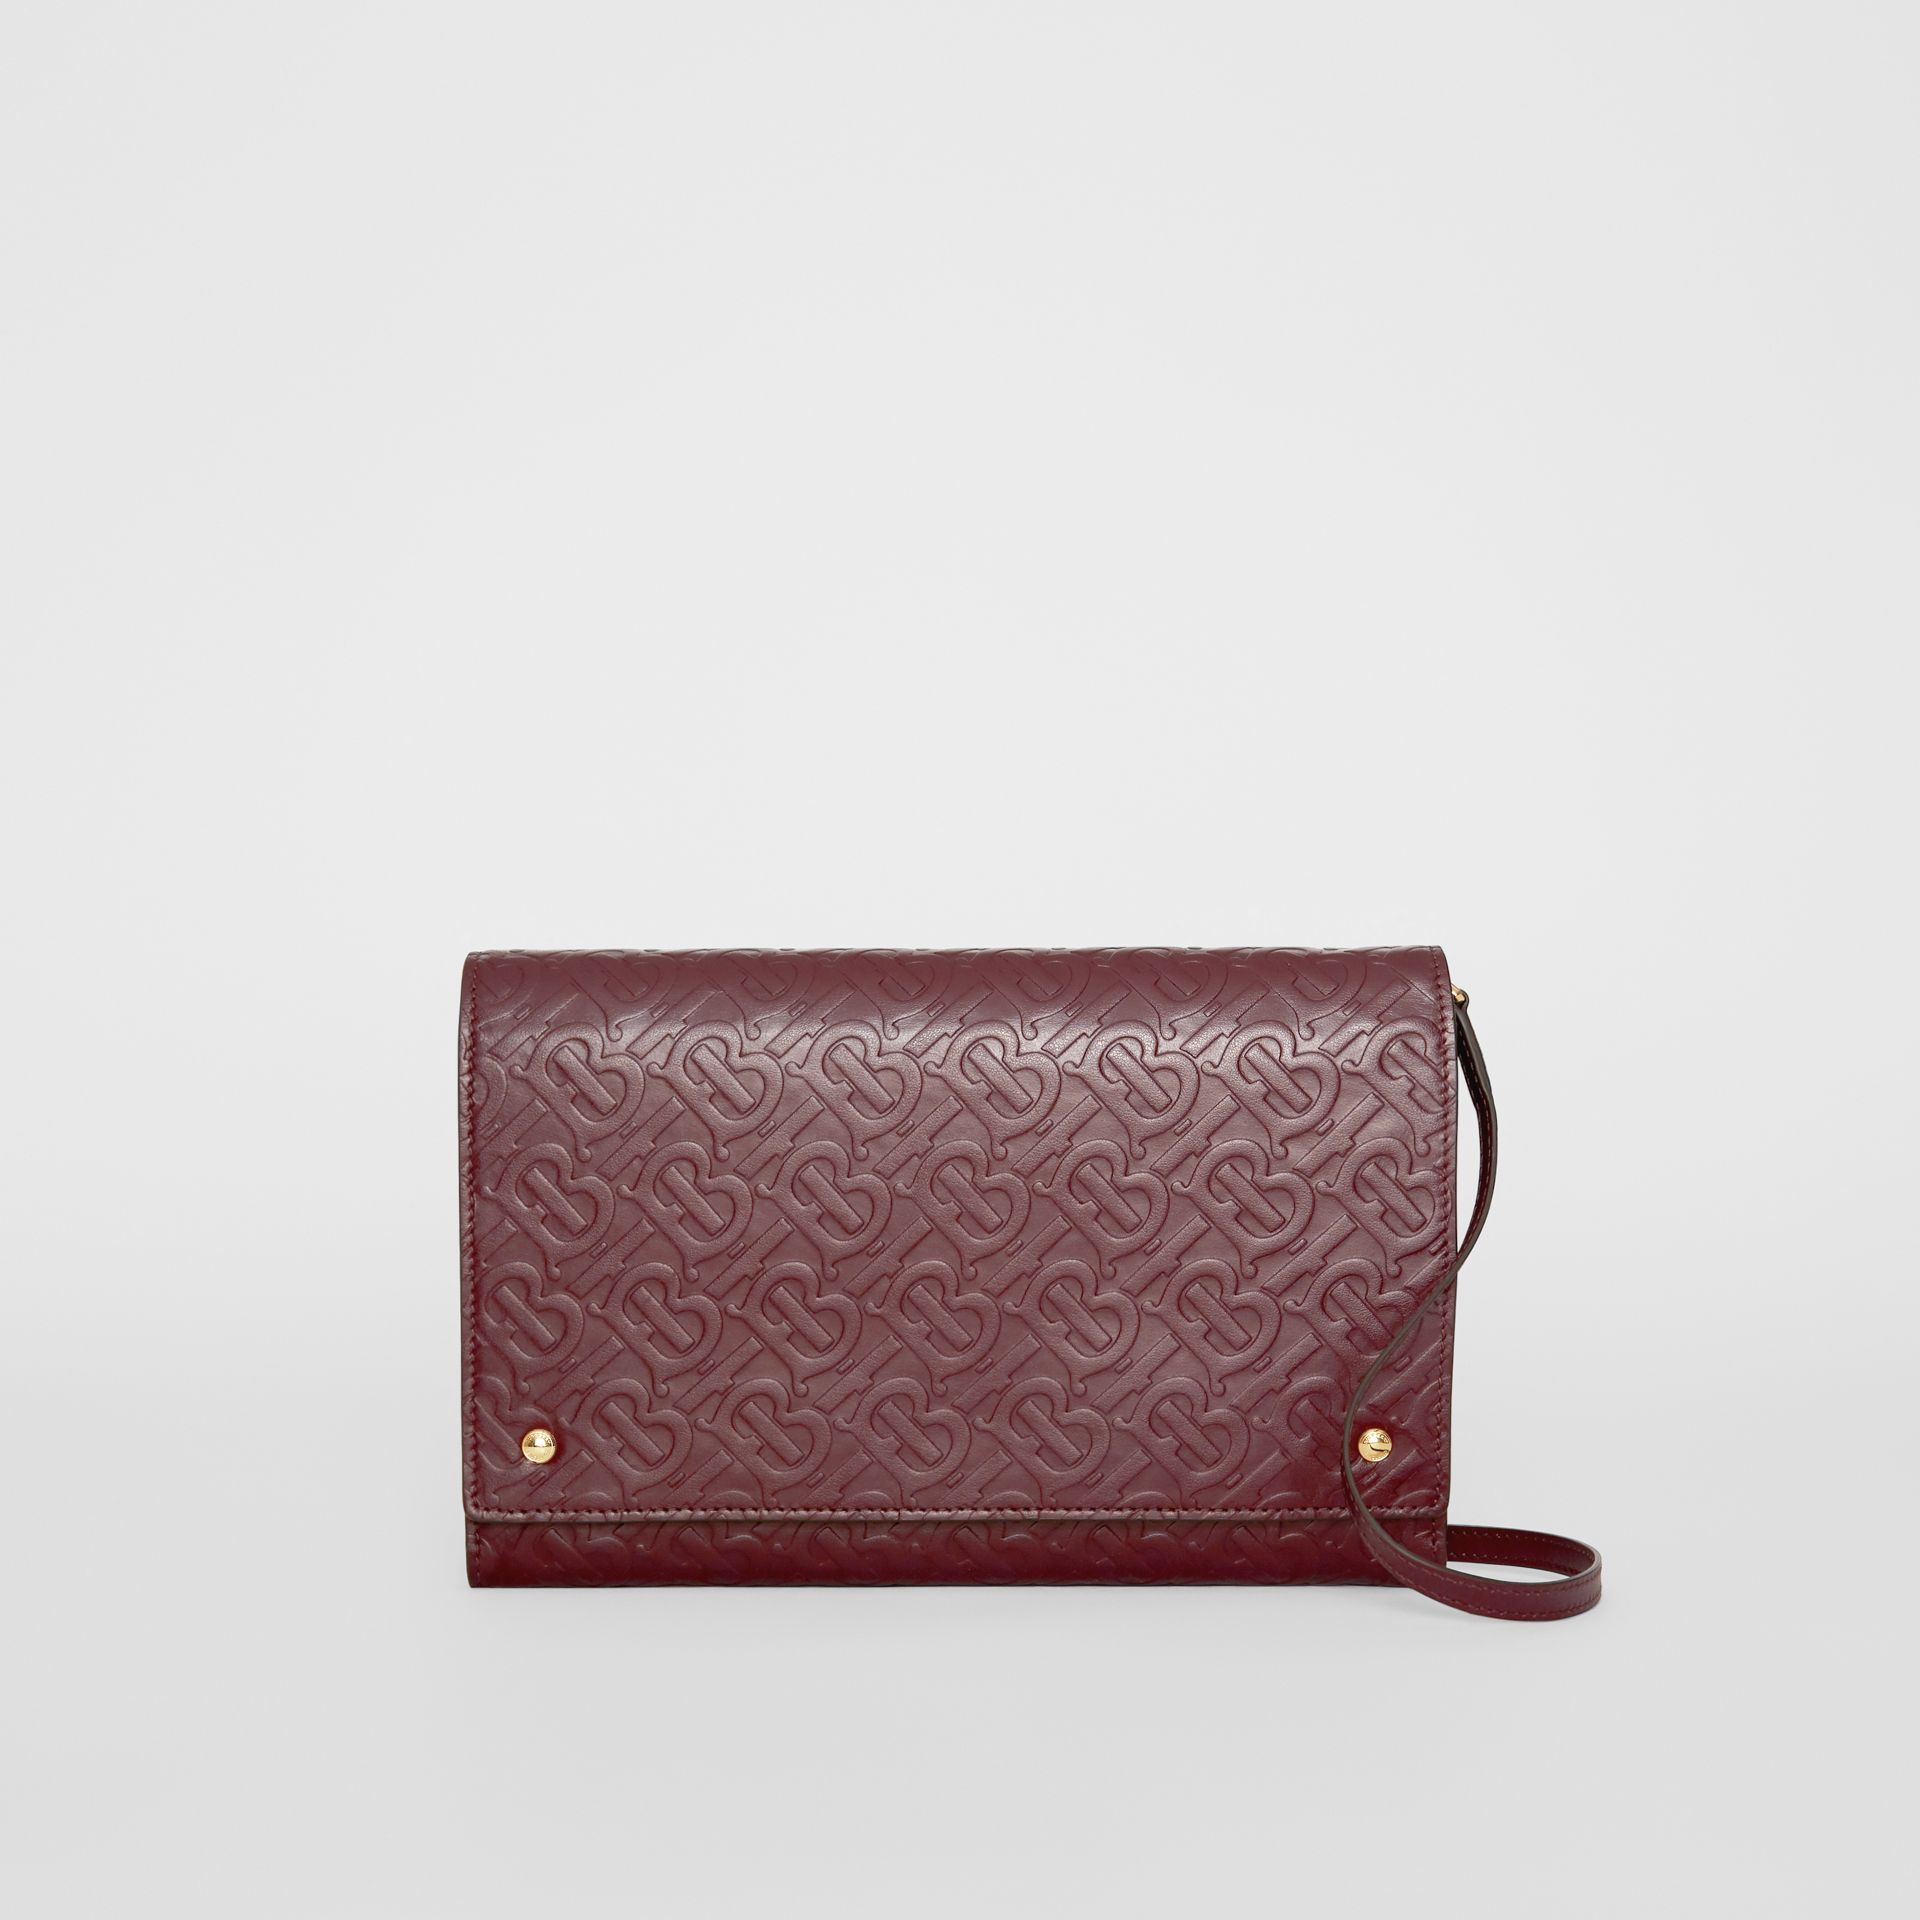 Sac en cuir Monogram avec sangle amovible (Oxblood) - Femme | Burberry Canada - photo de la galerie 0